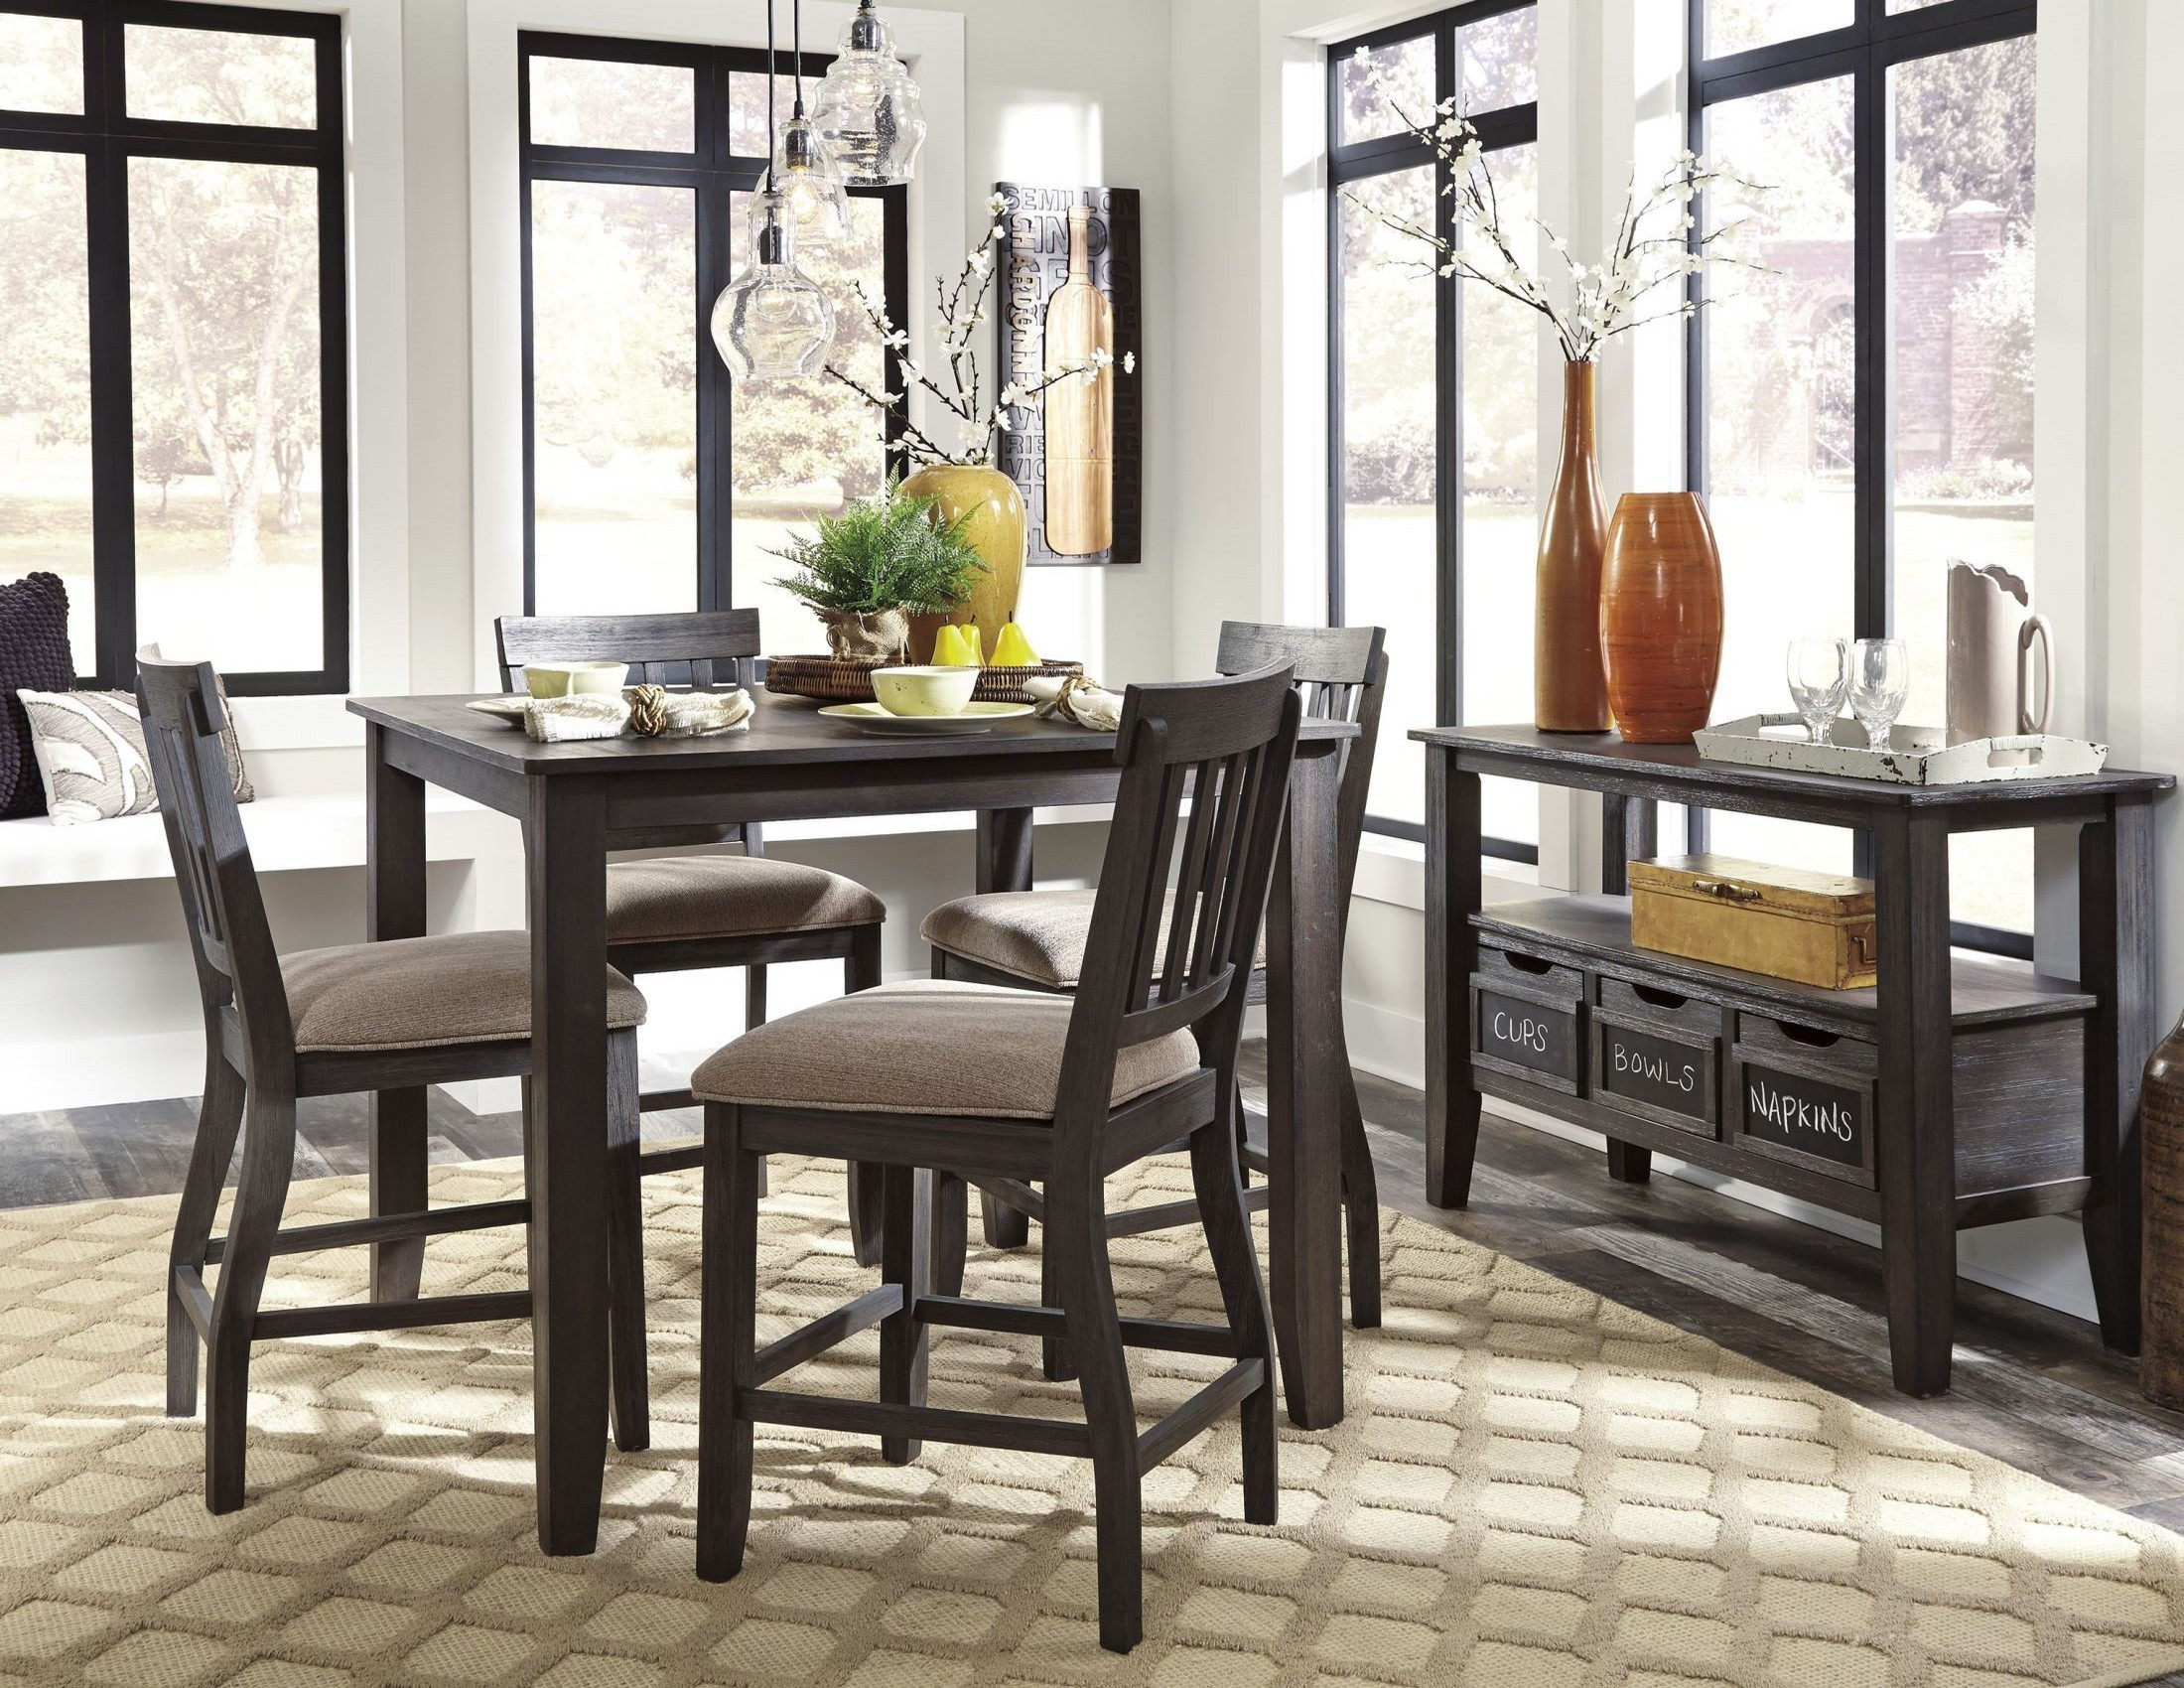 Dresbar Grayish Brown Square Counter Height Dining Room  : d485 13 1244 60 l0004583 from colemanfurniture.com size 2200 x 1700 jpeg 885kB